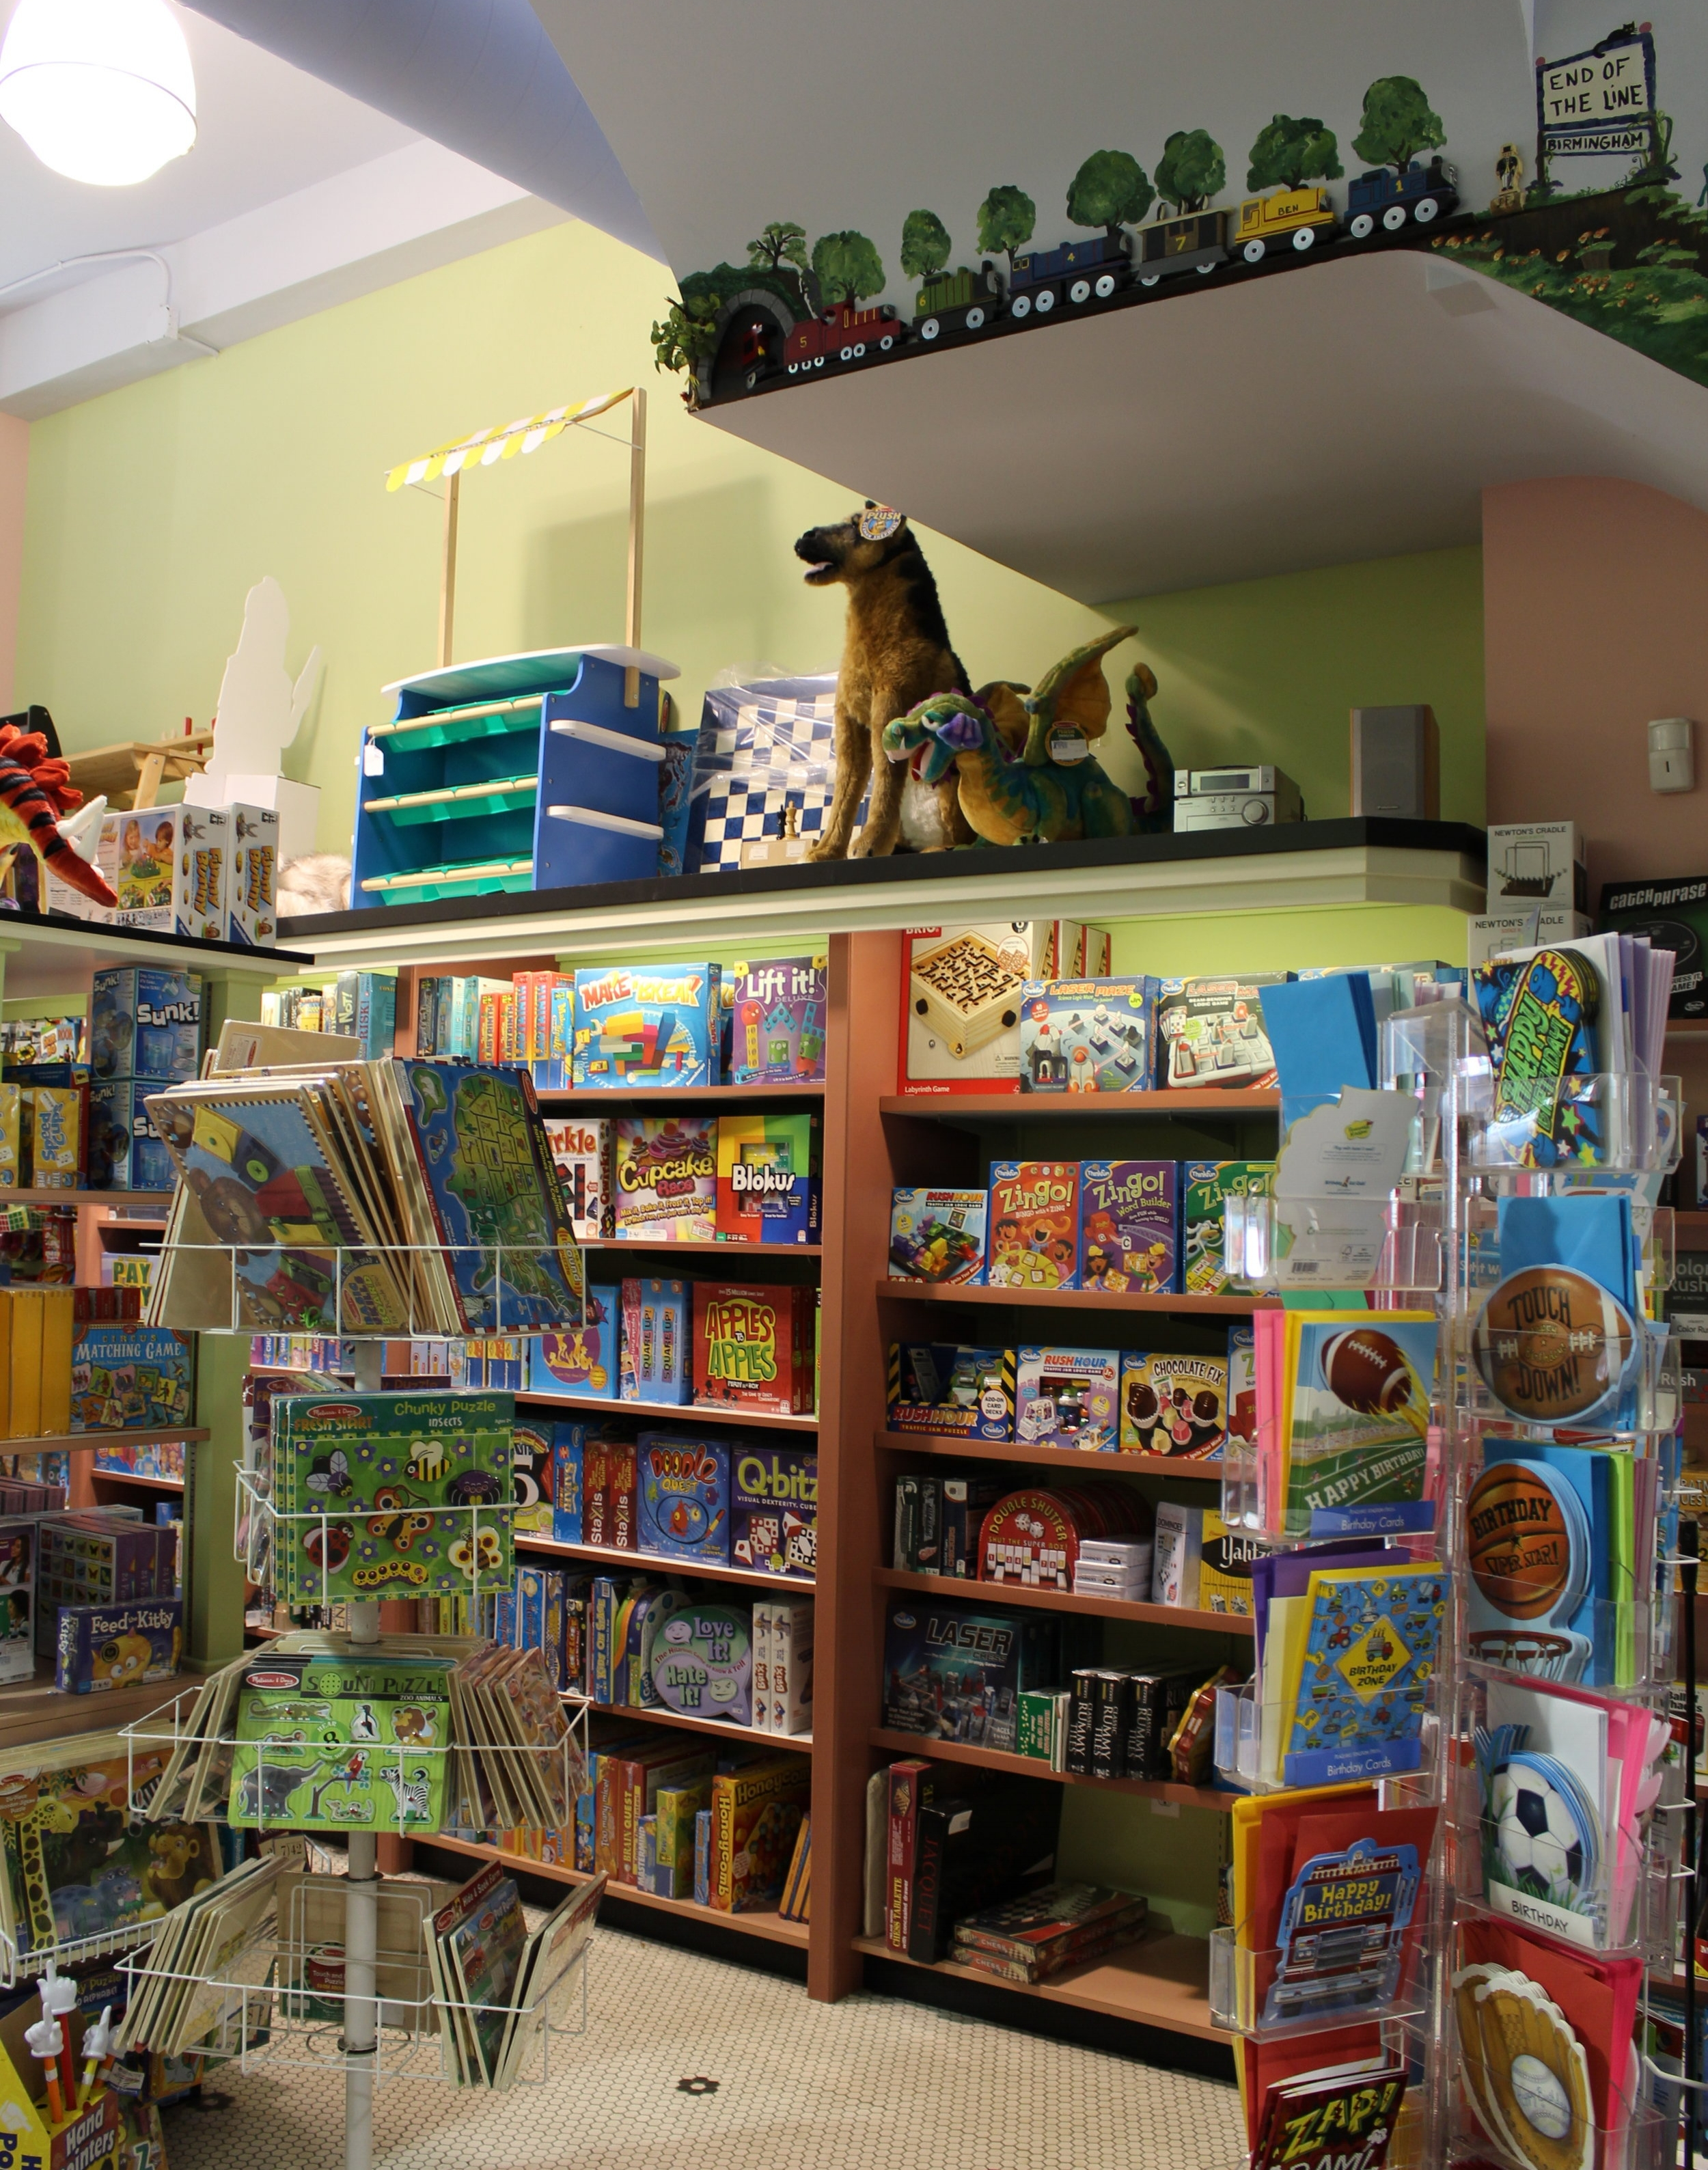 Find Everything You're Looking For - Our selection of toys is one of the largest in the Metro Detroit area. In our store, you can find all your kid's favorites. We are always up-to-date with the latest and greatest toys that they're sure to love.Learn more ➝